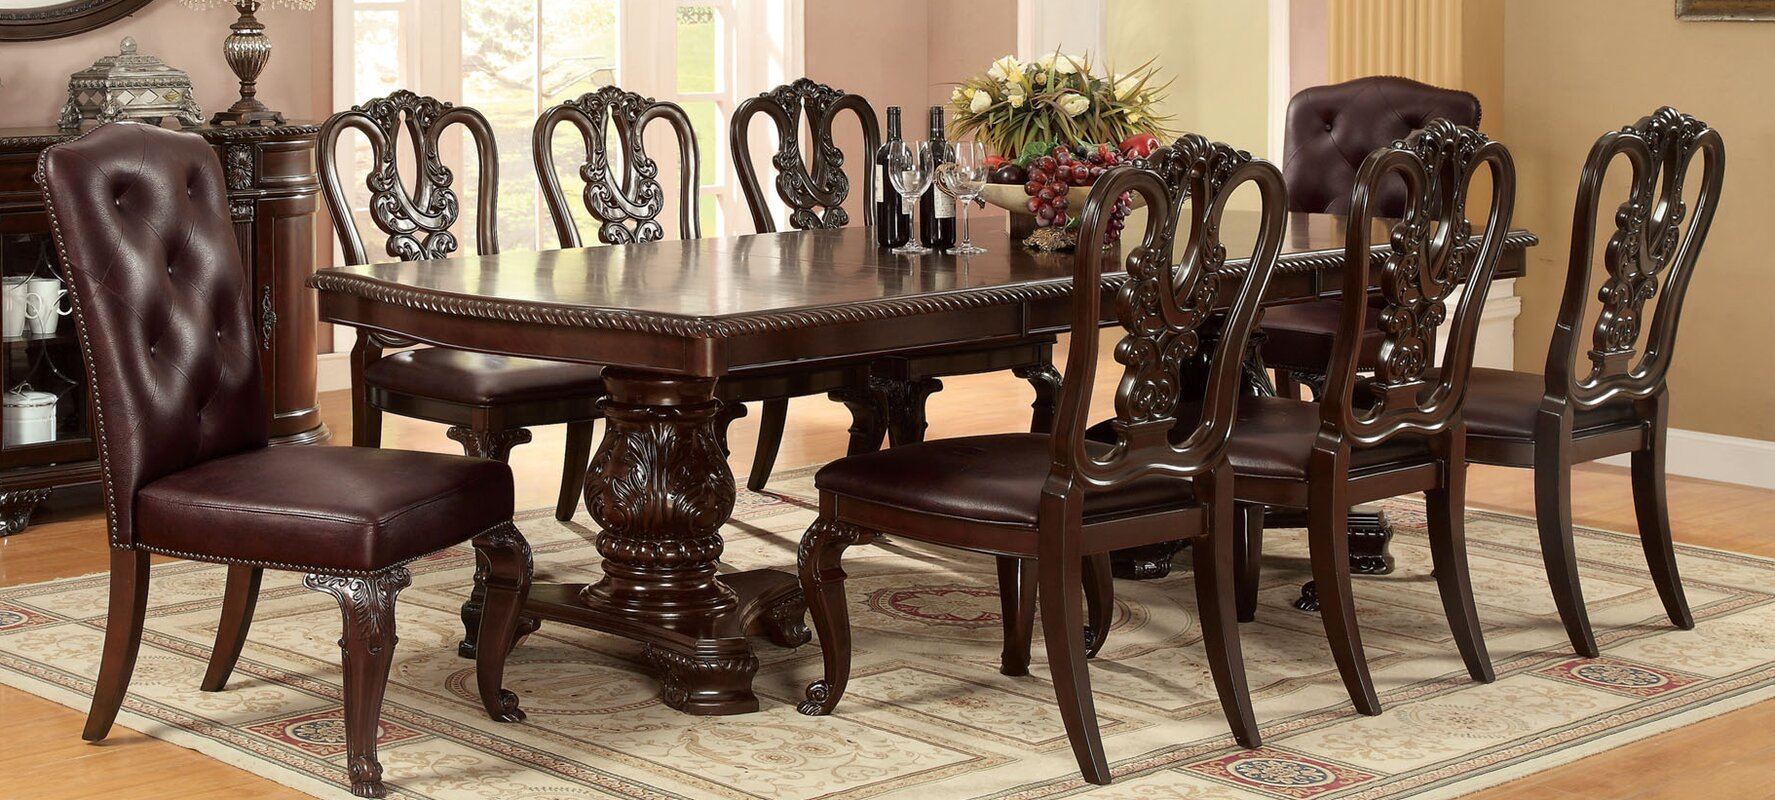 Brown Cherry Dining Table